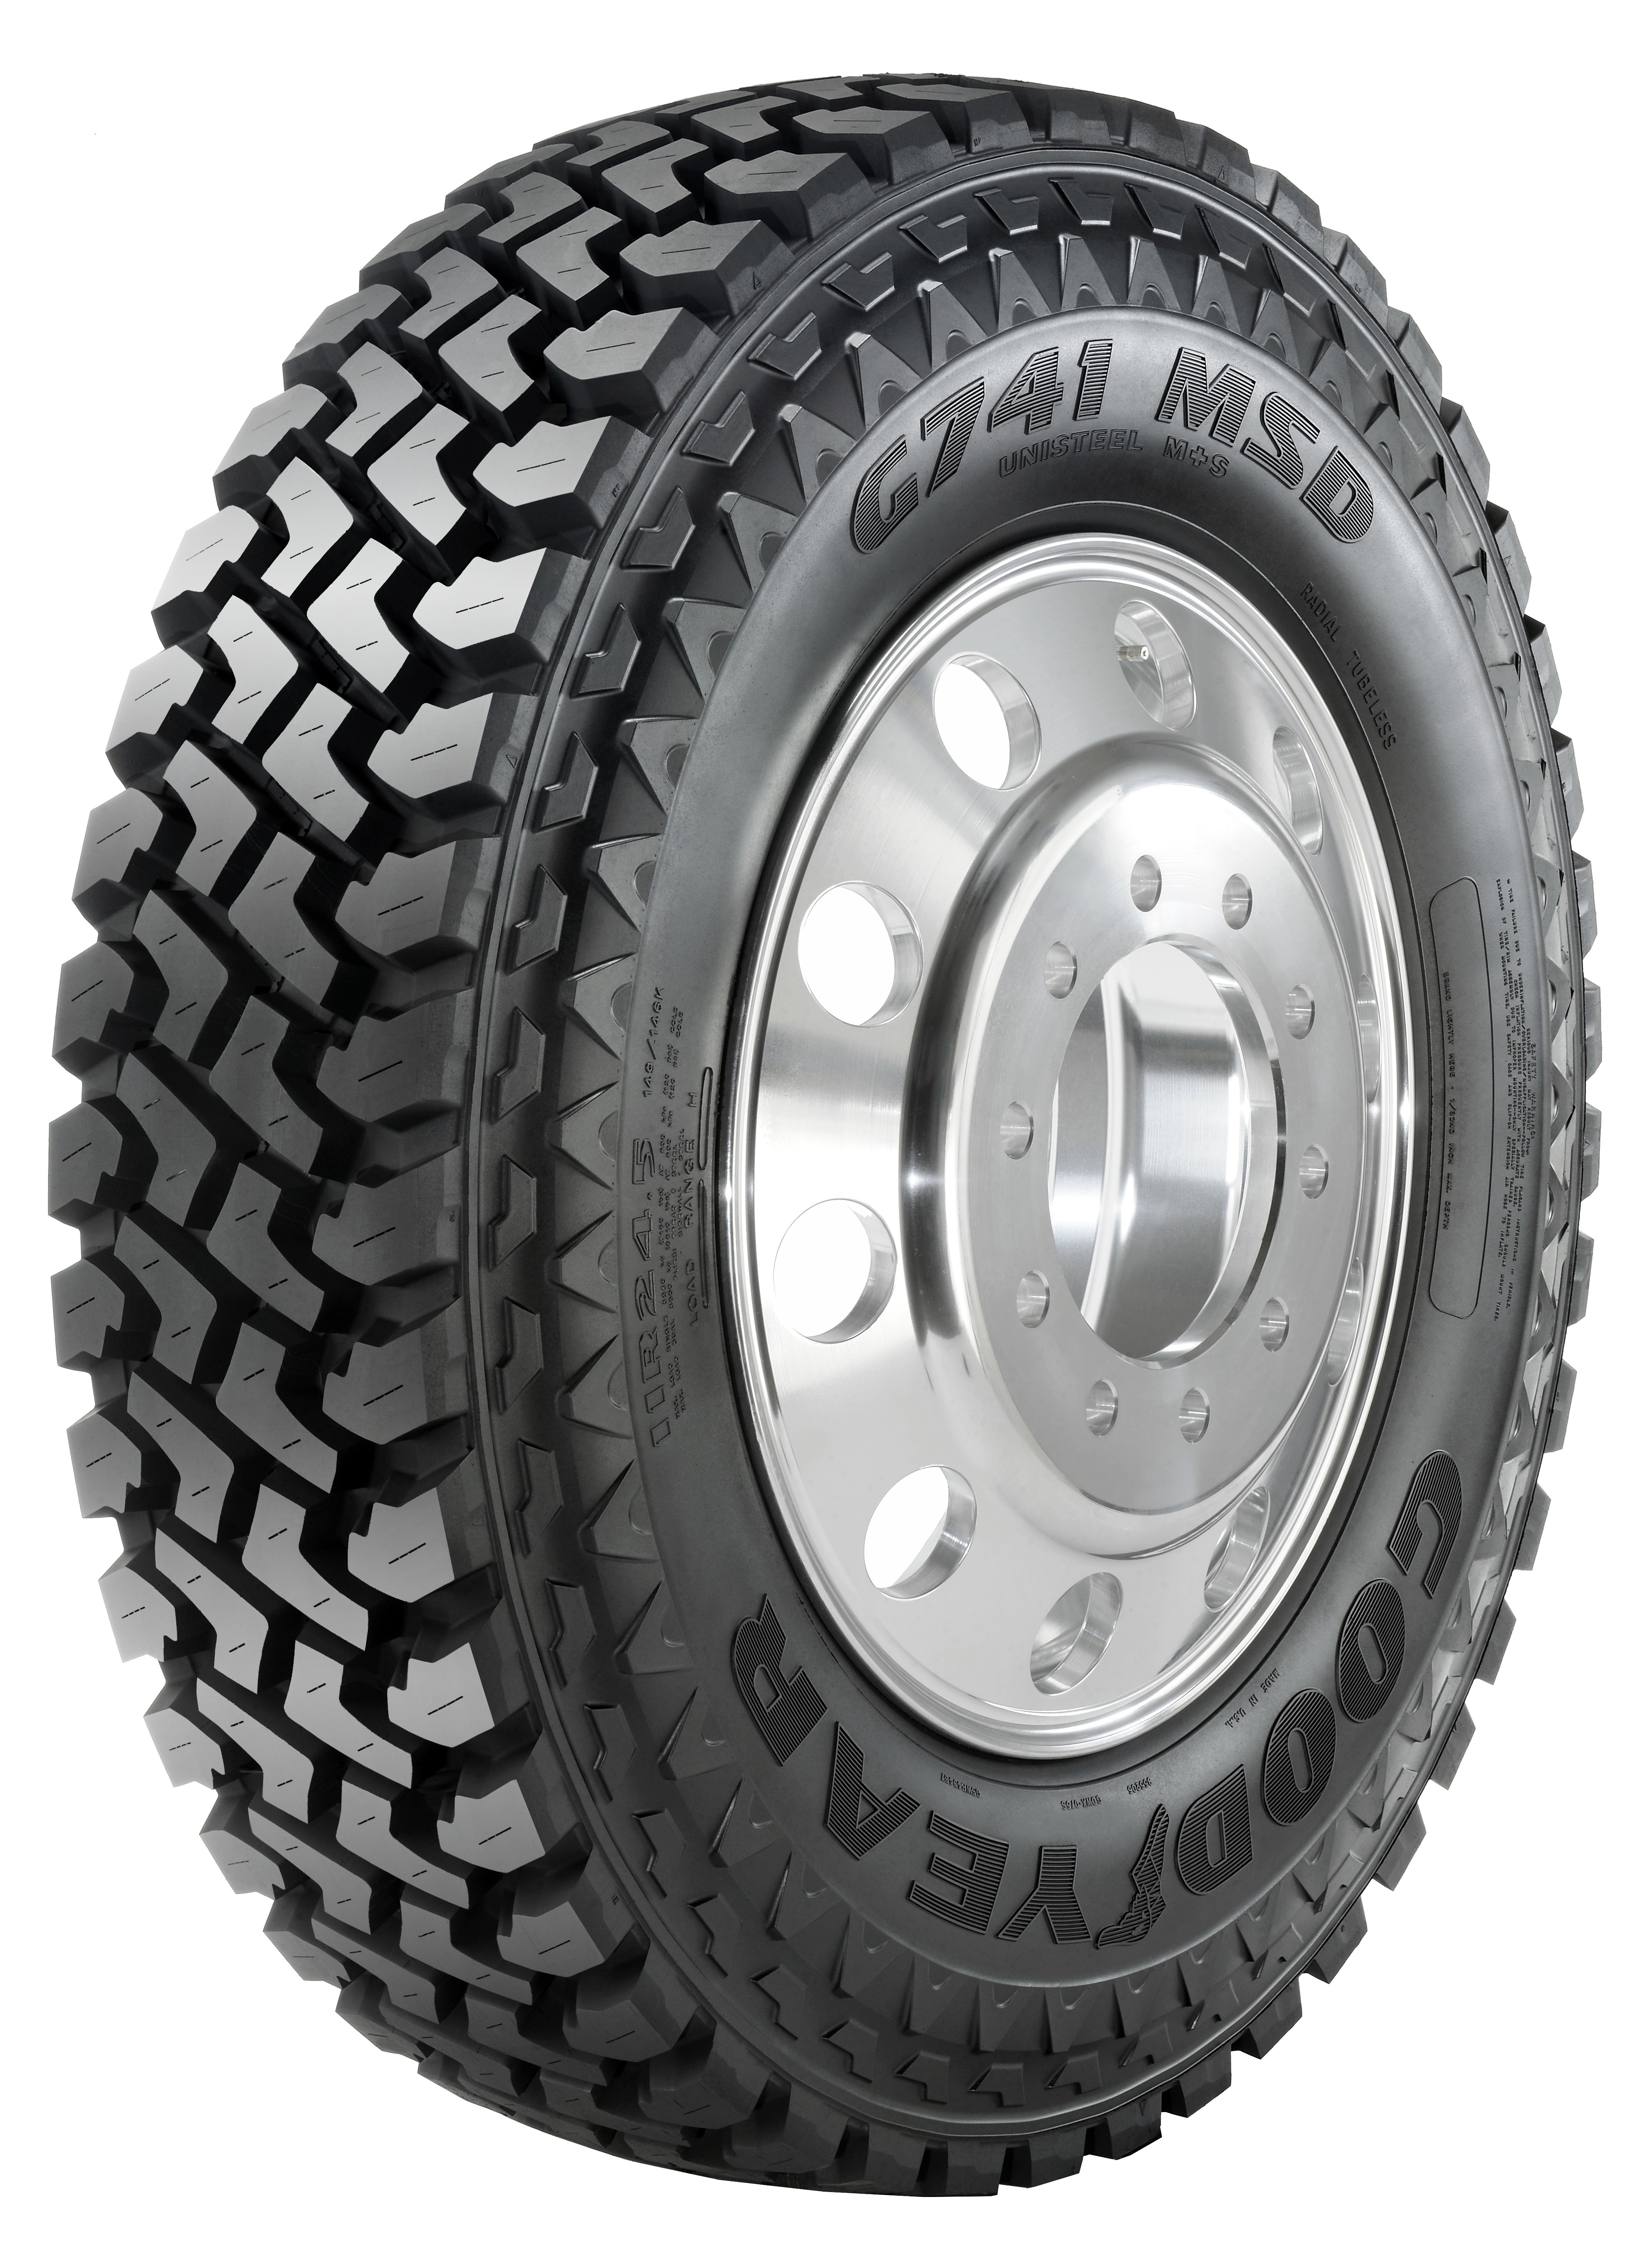 Goodyear broadens mixed-service tire offering